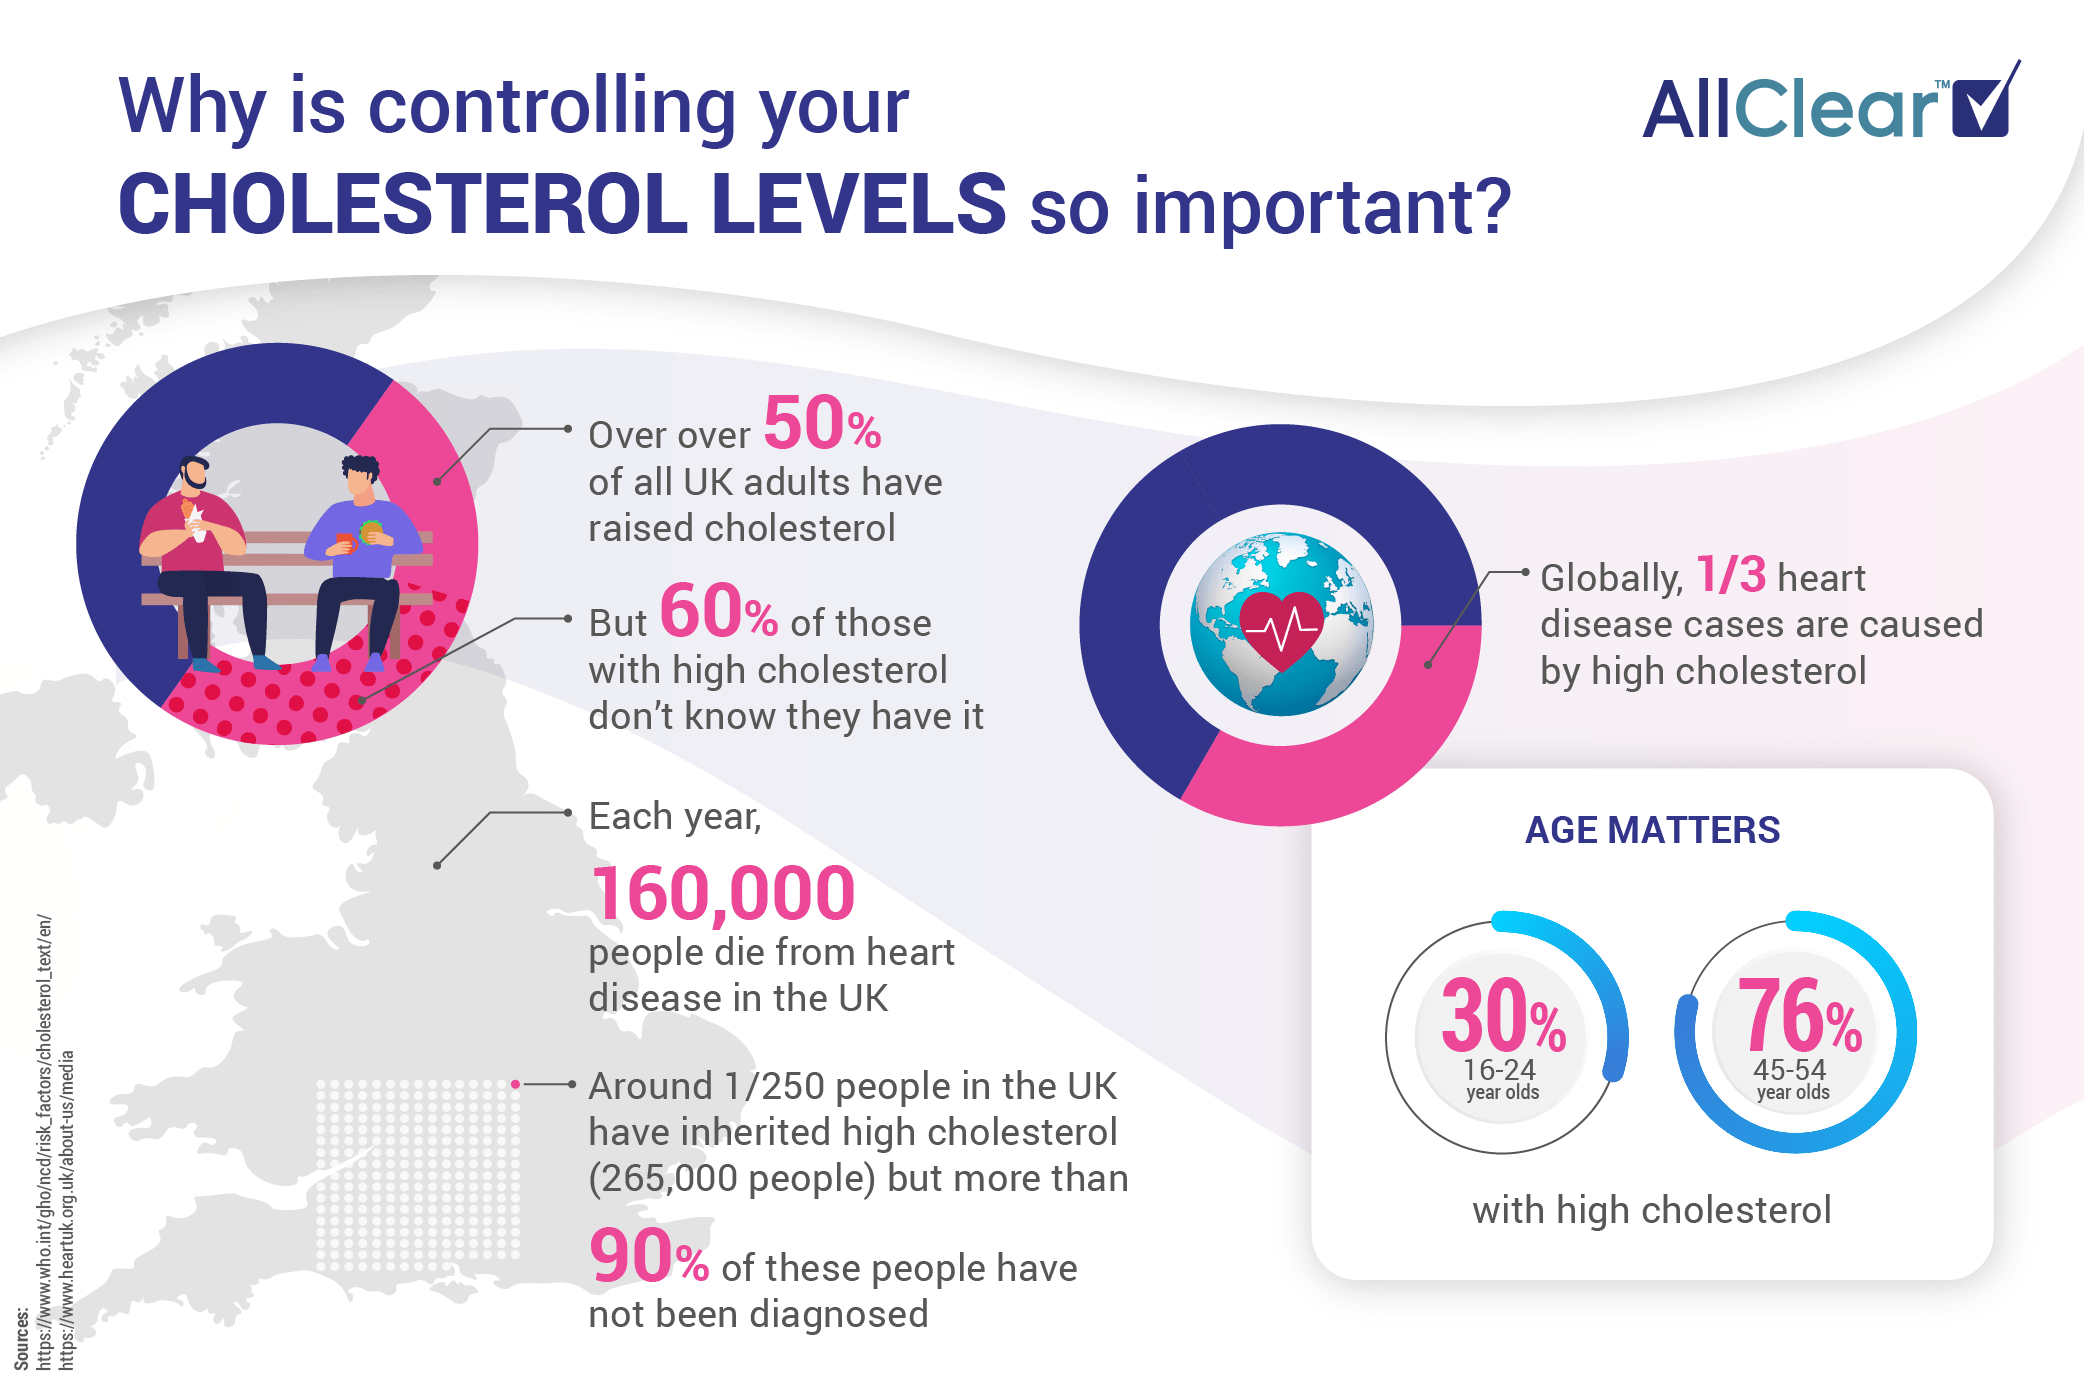 Travelling with High Cholesterol: Information graphic on high cholesterol in the UK and around the world